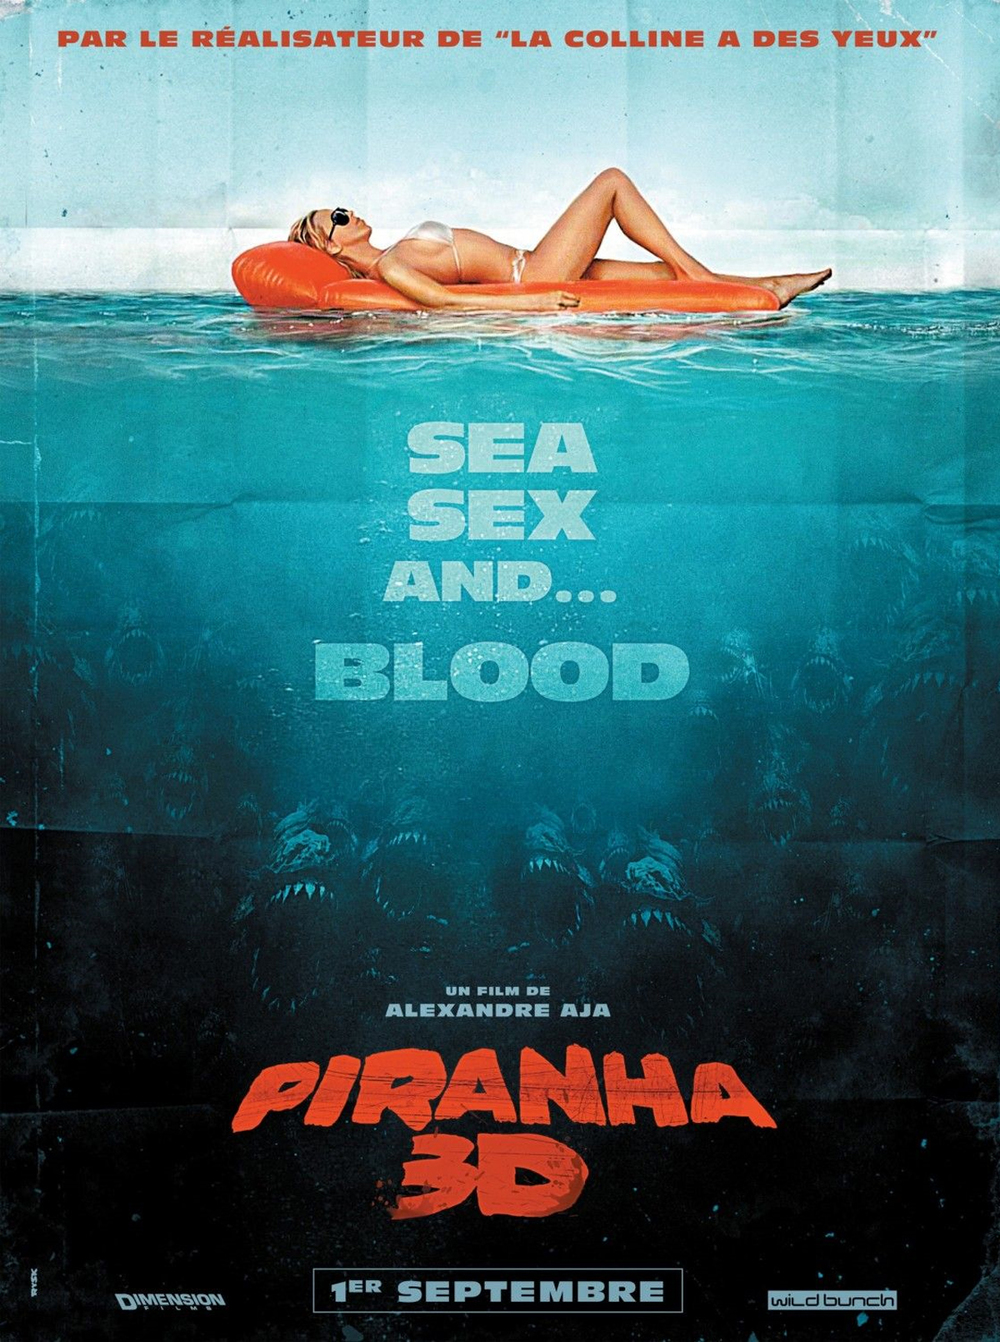 piranha-3d-movie-poster.jpg